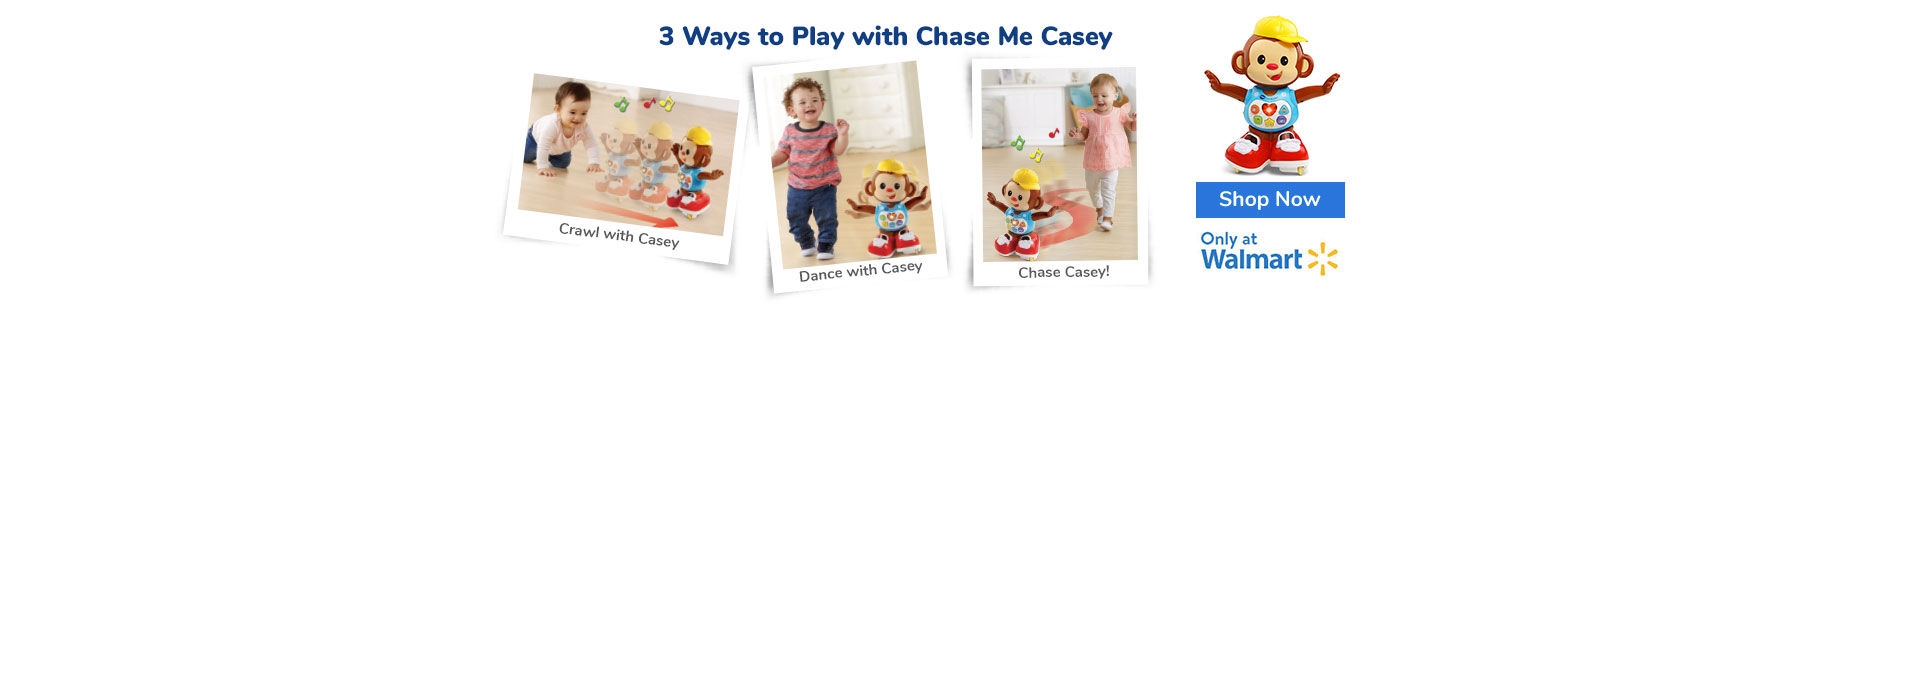 Chase Me Casey - Only at Walmart